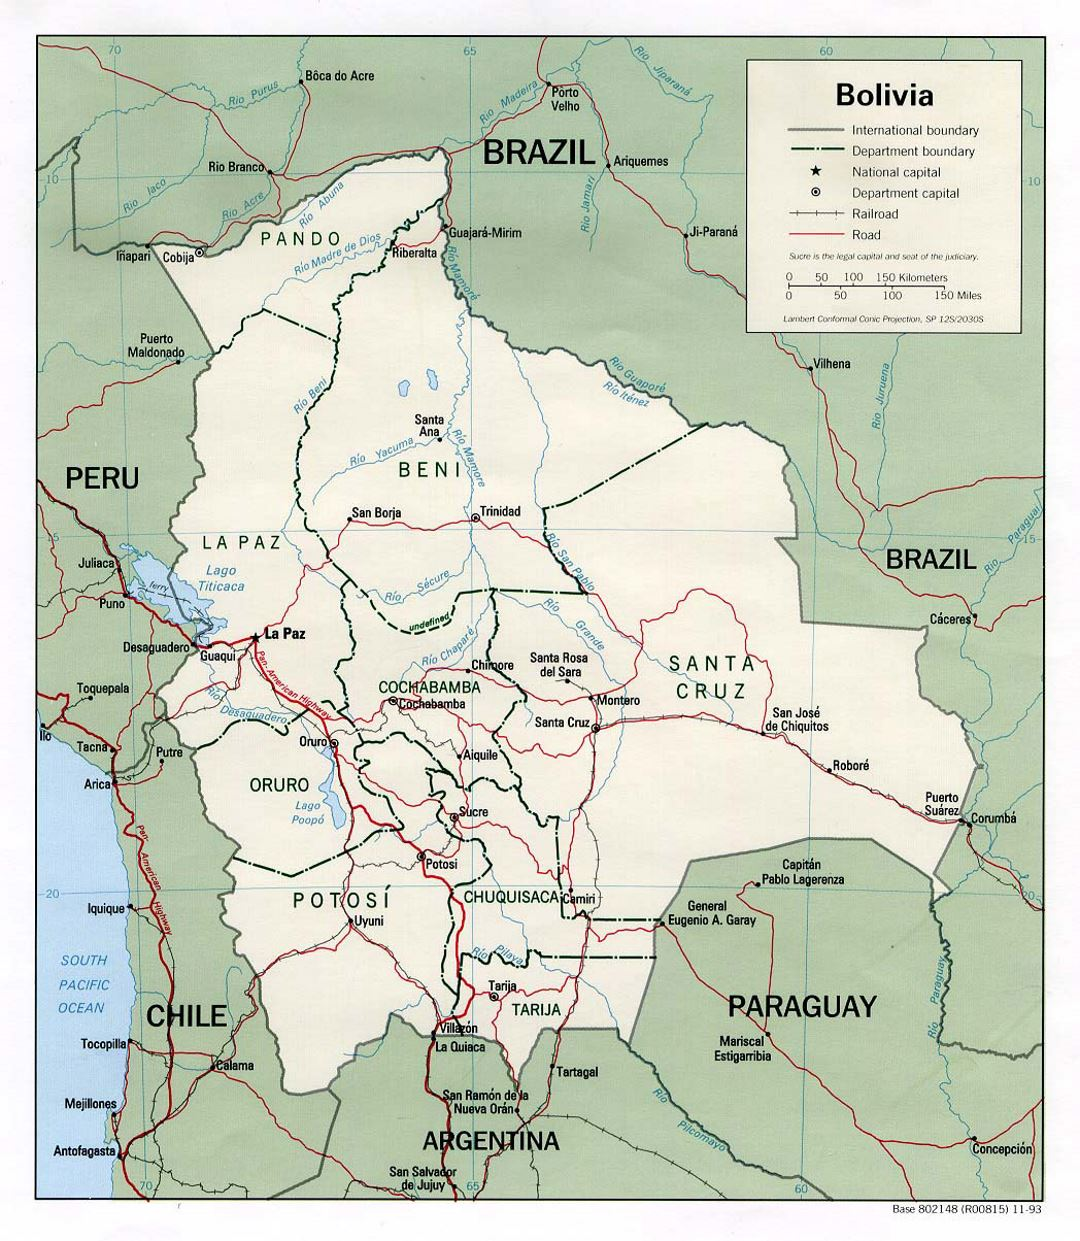 Detailed political and administrative map of Bolivia with roads and major cities - 1993